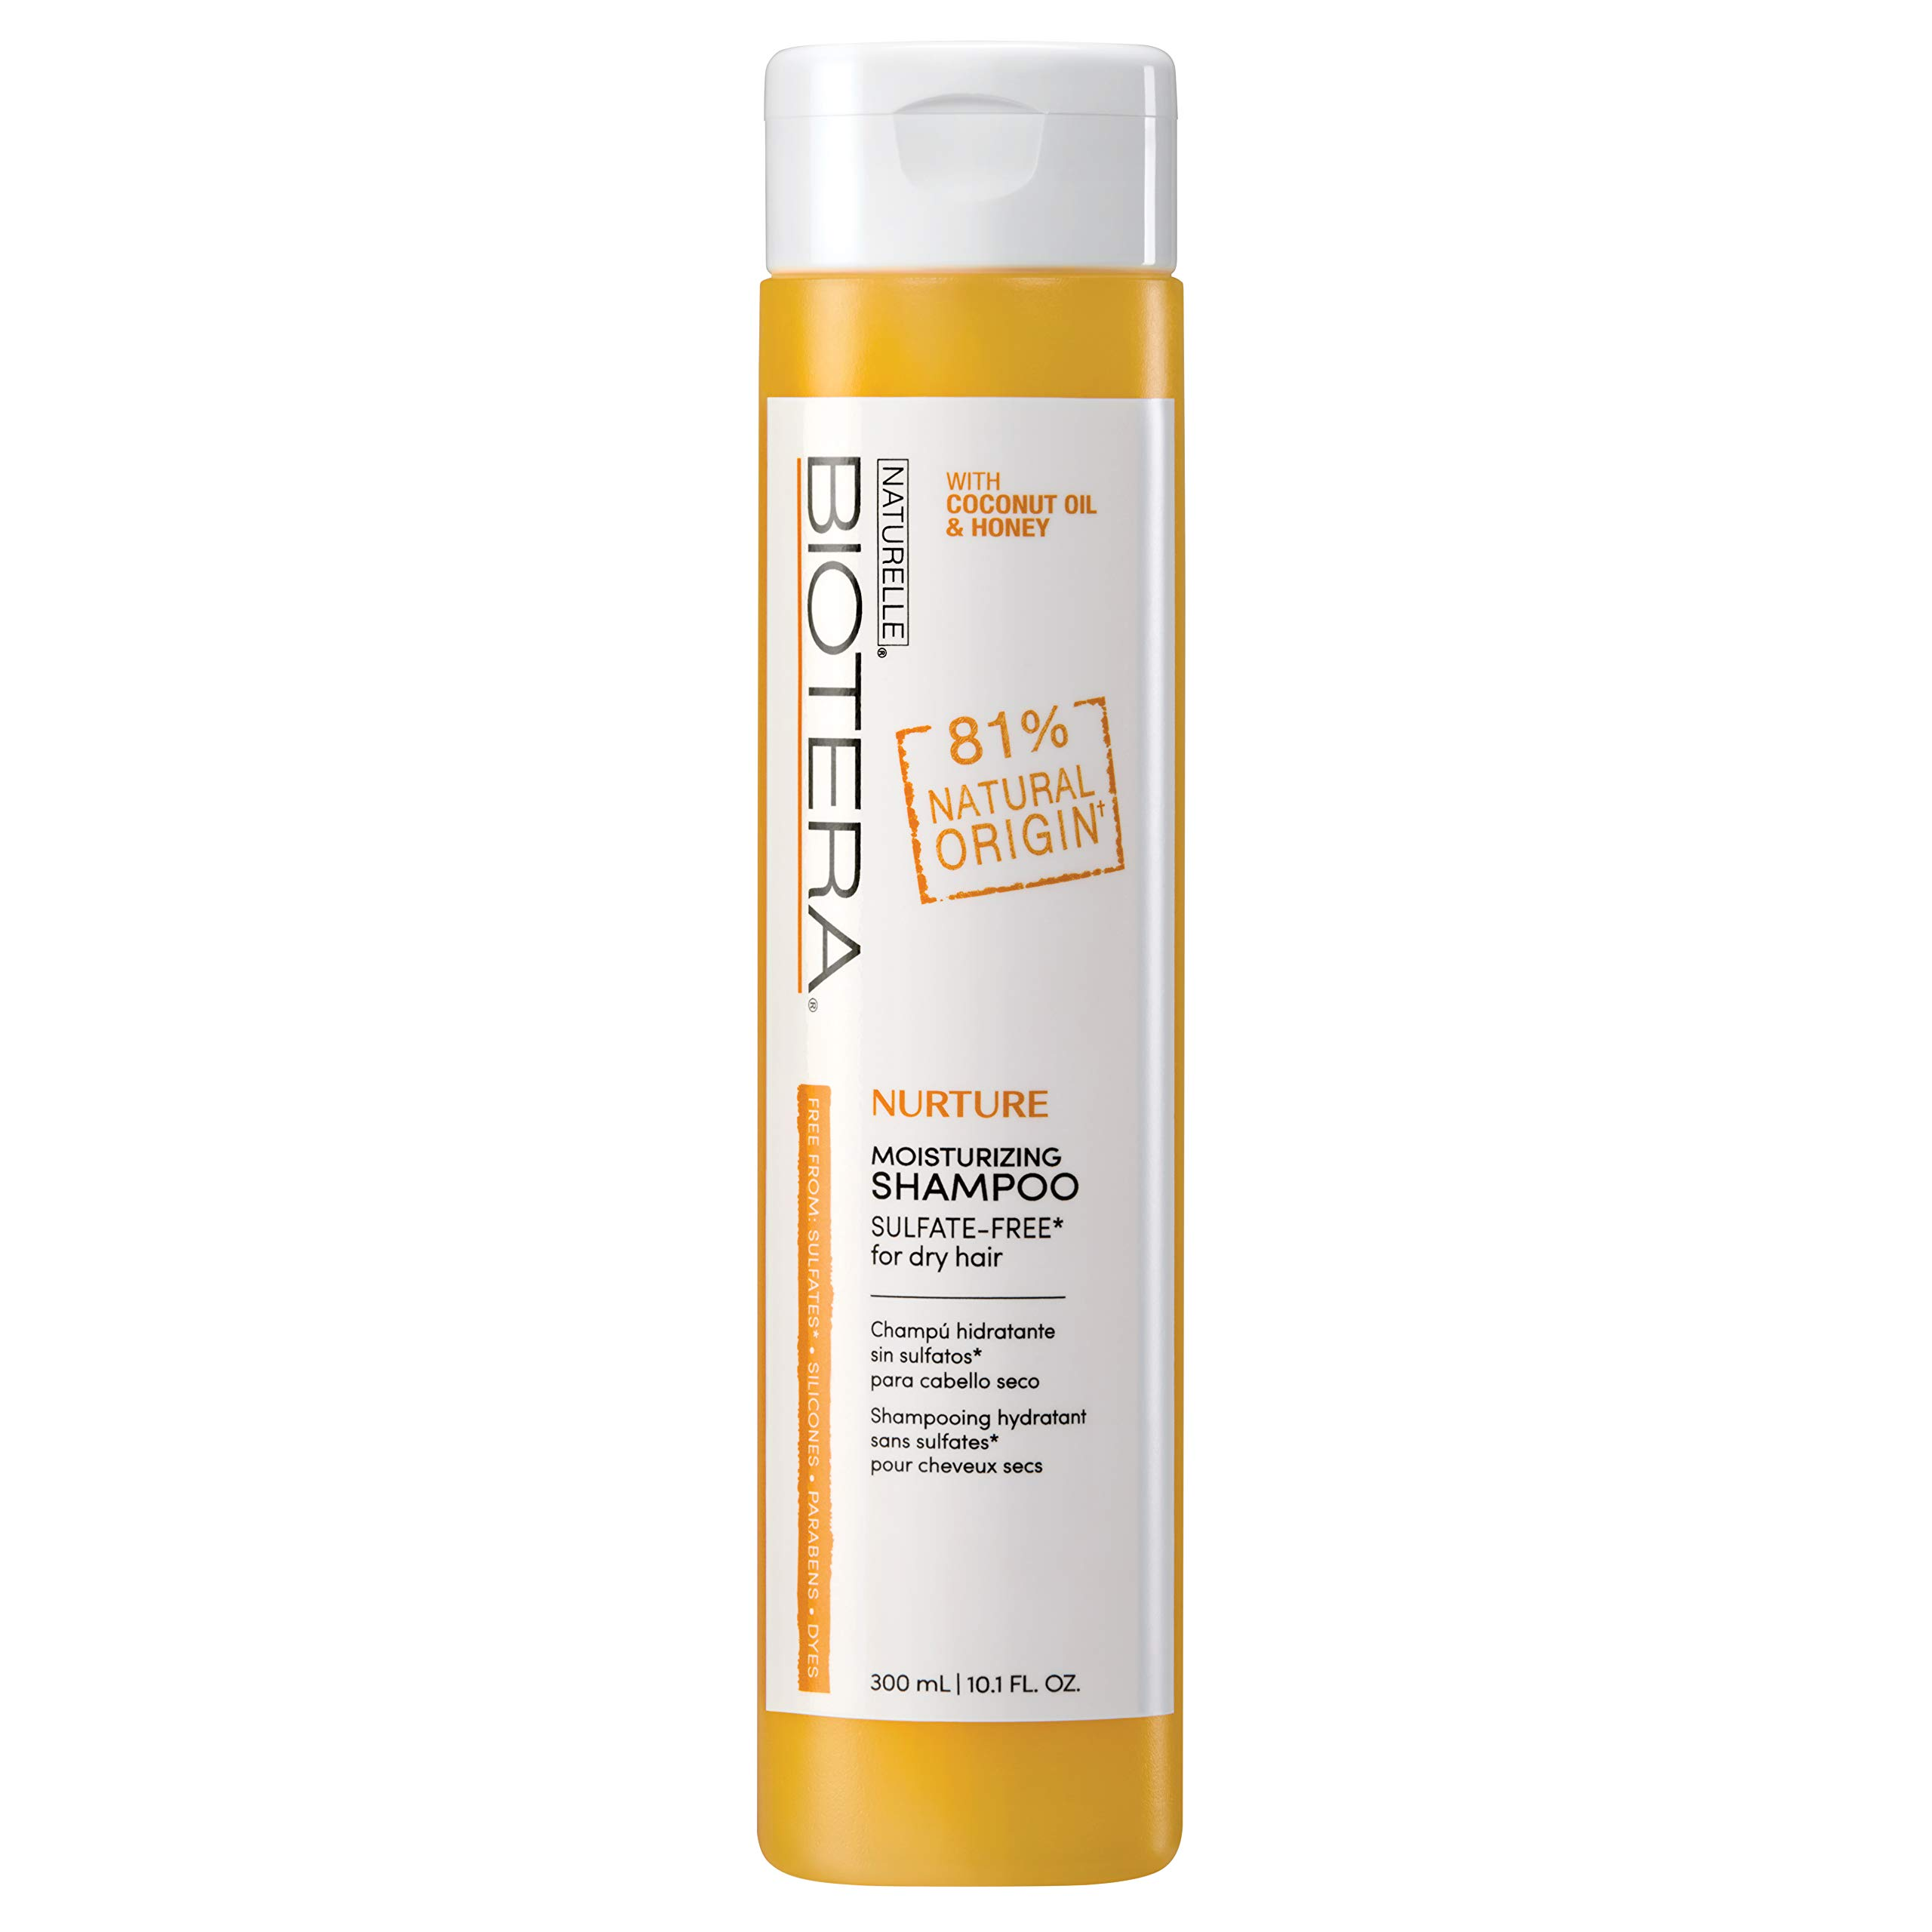 Biotera Natural Origin Nurture Moisturizing Shampoo, with Coconut Oil and Honey/Free from SLS/SLES Sulfates, Silicones, Parabens, Dyes and Gluten/Up to 97% Natural Original, 10.1-Ounce